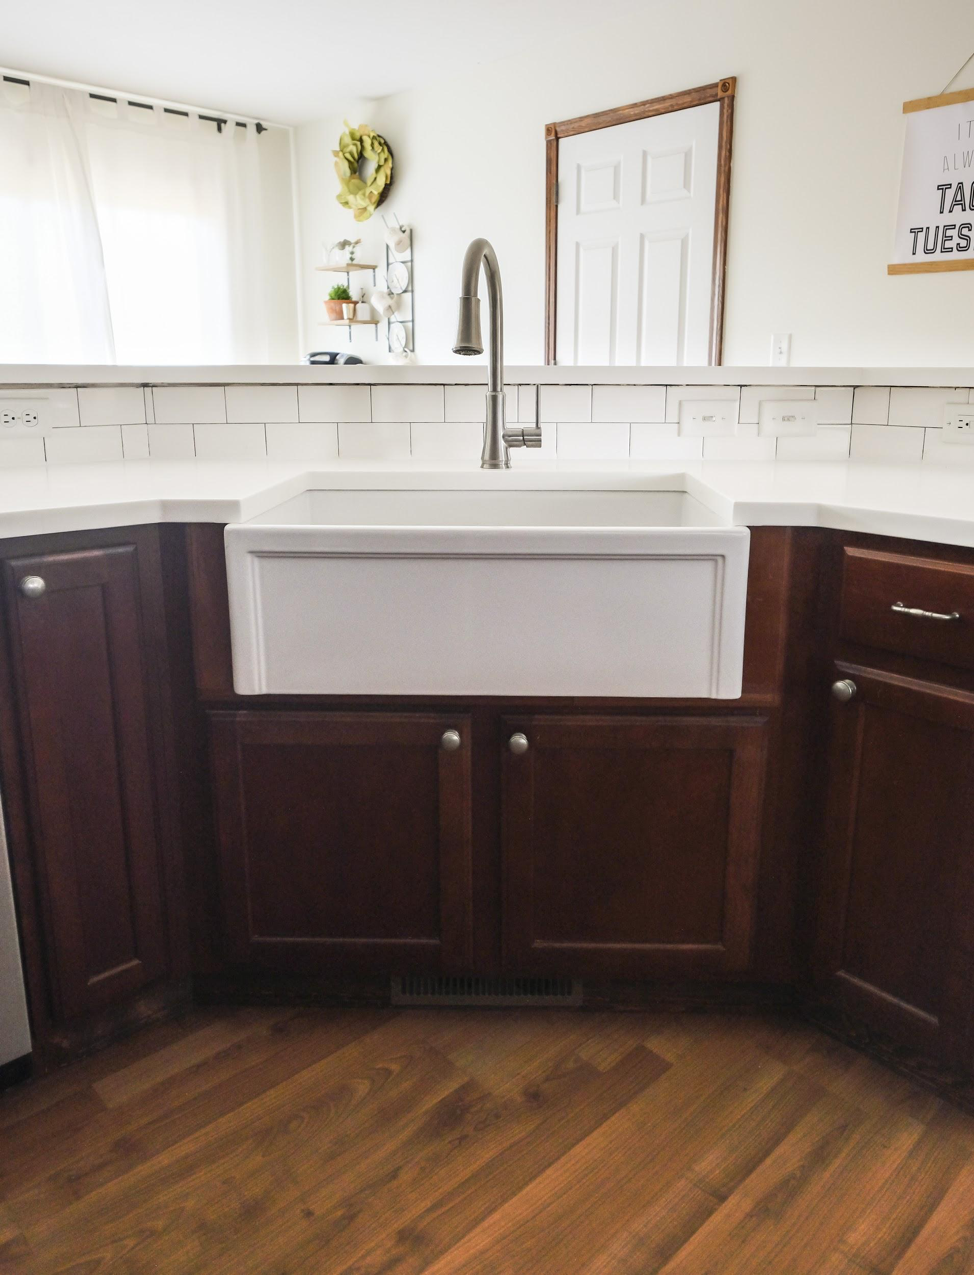 Fireclay Farmhouse Kitchen Sink Installation Guide